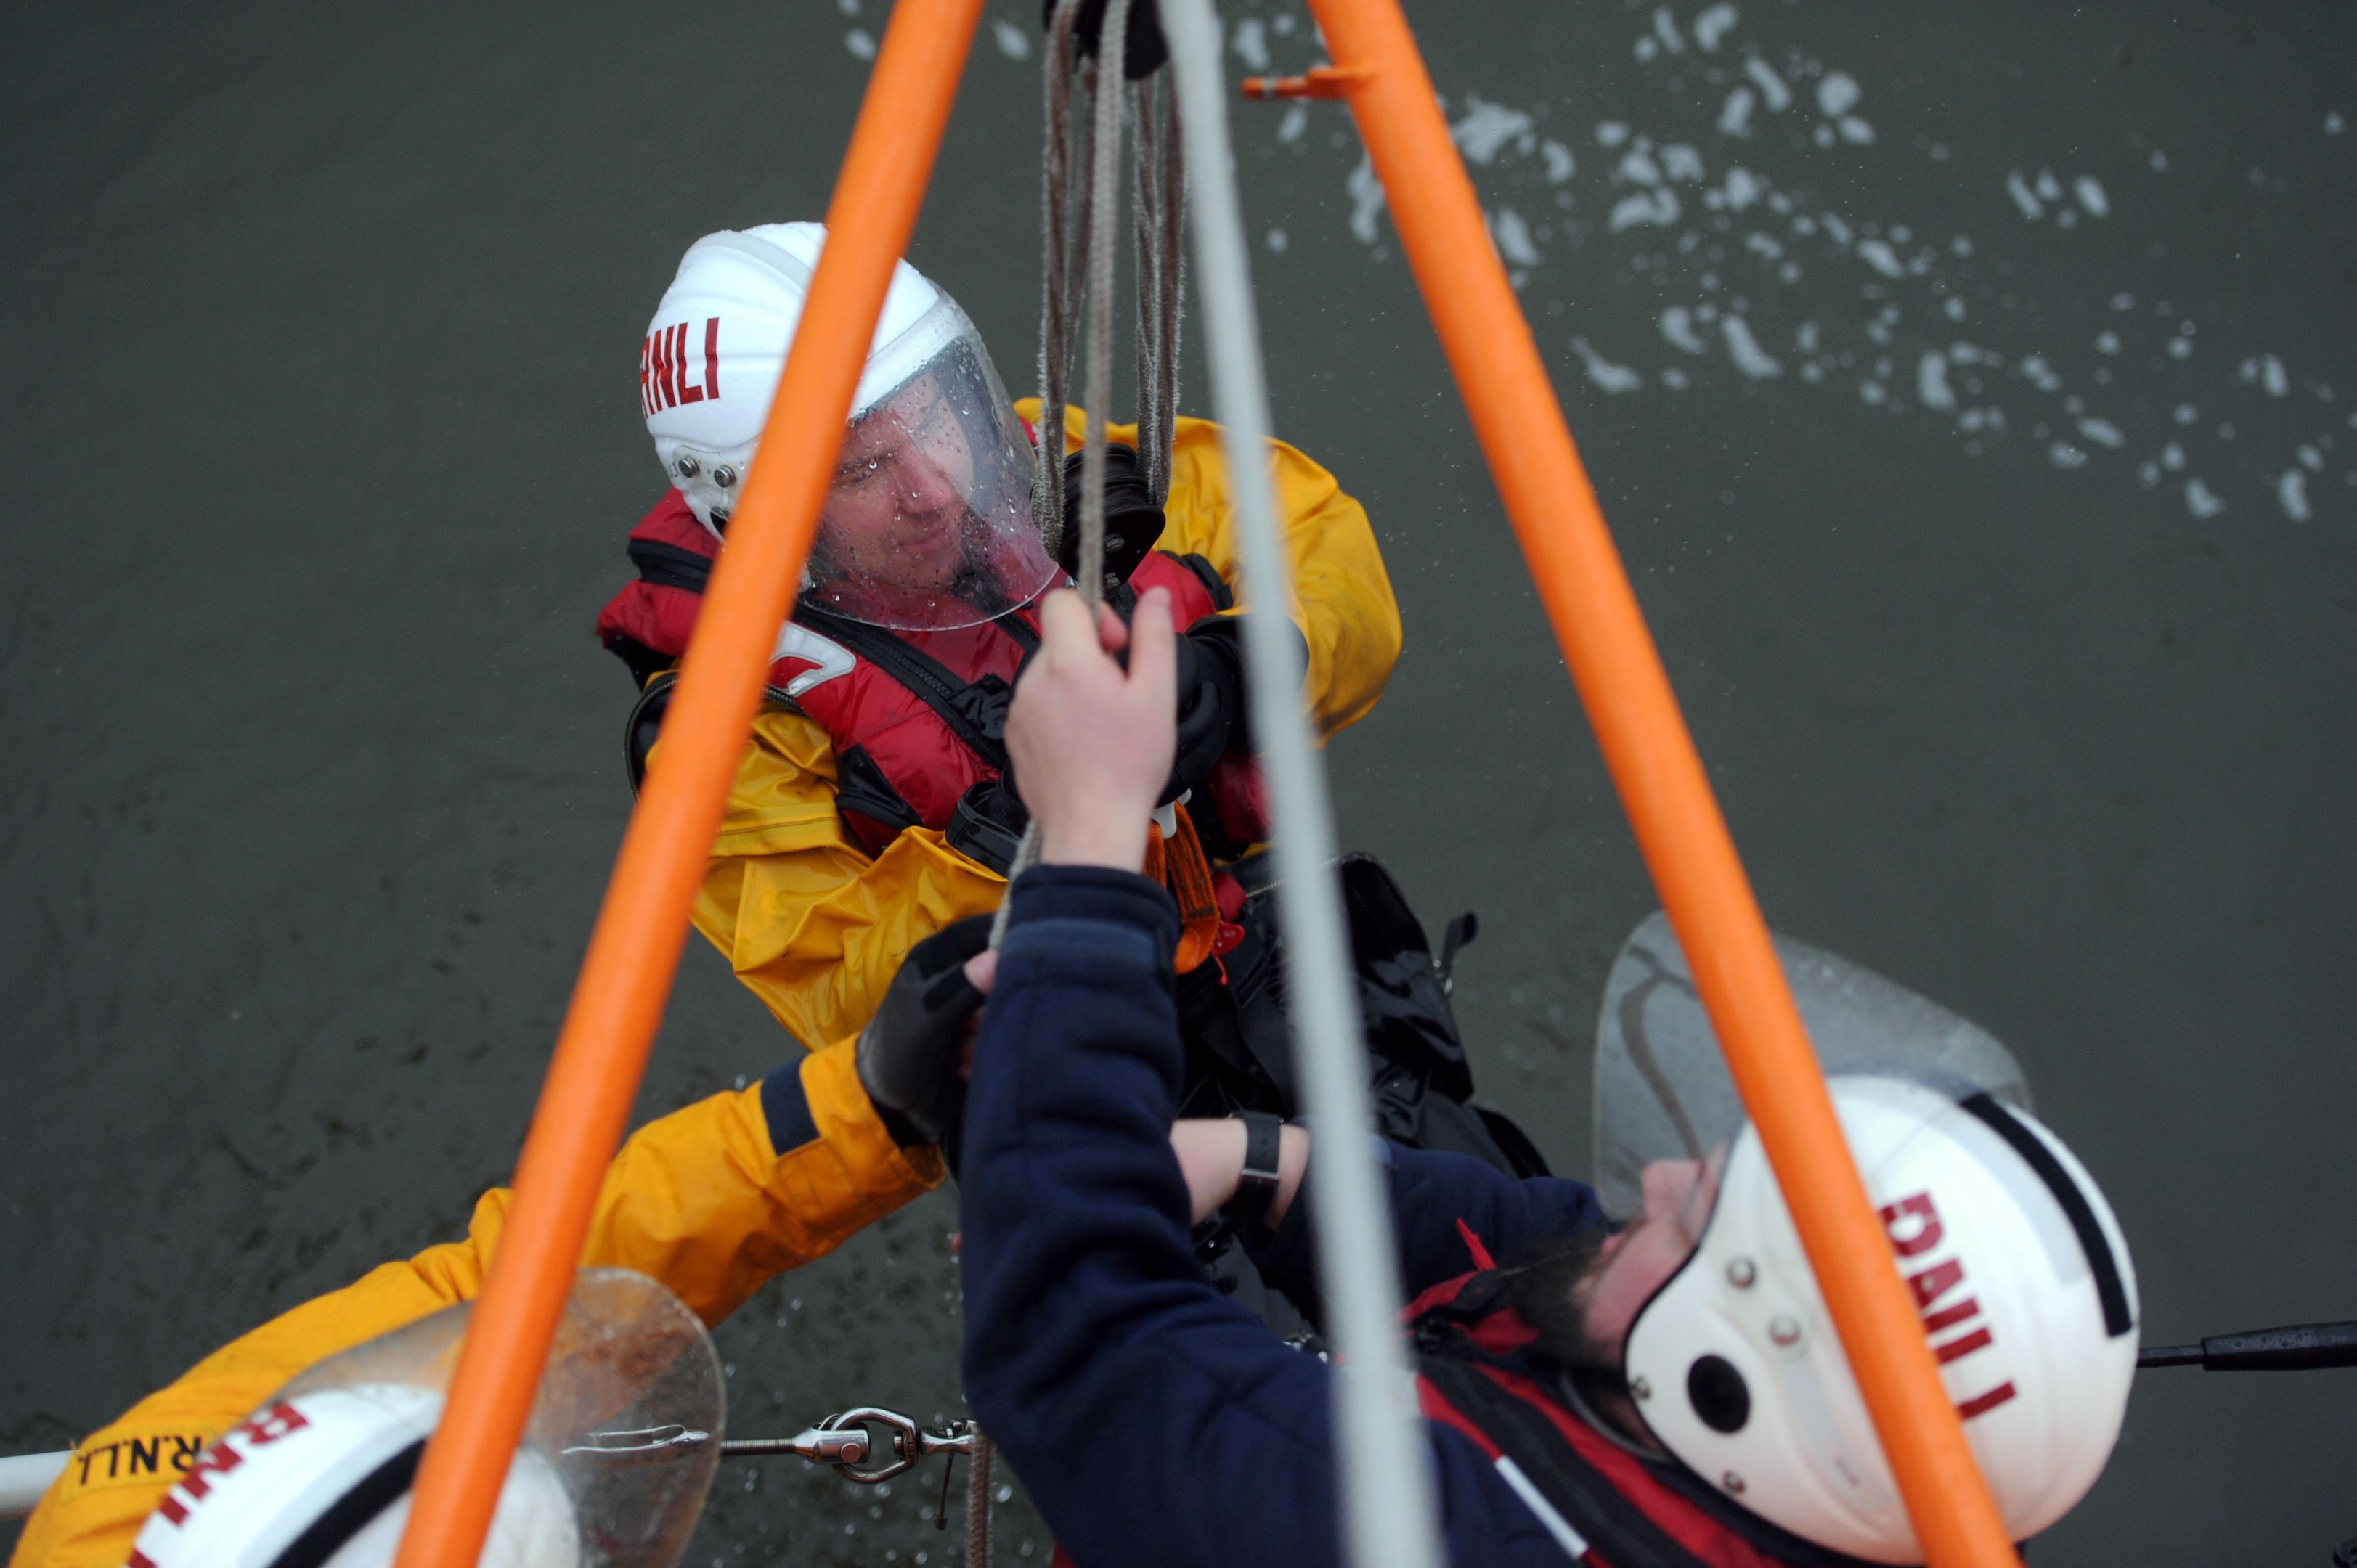 RNLI volunteer Bruce Finnie taking part in a demonstration. Picture by Darrell Benns